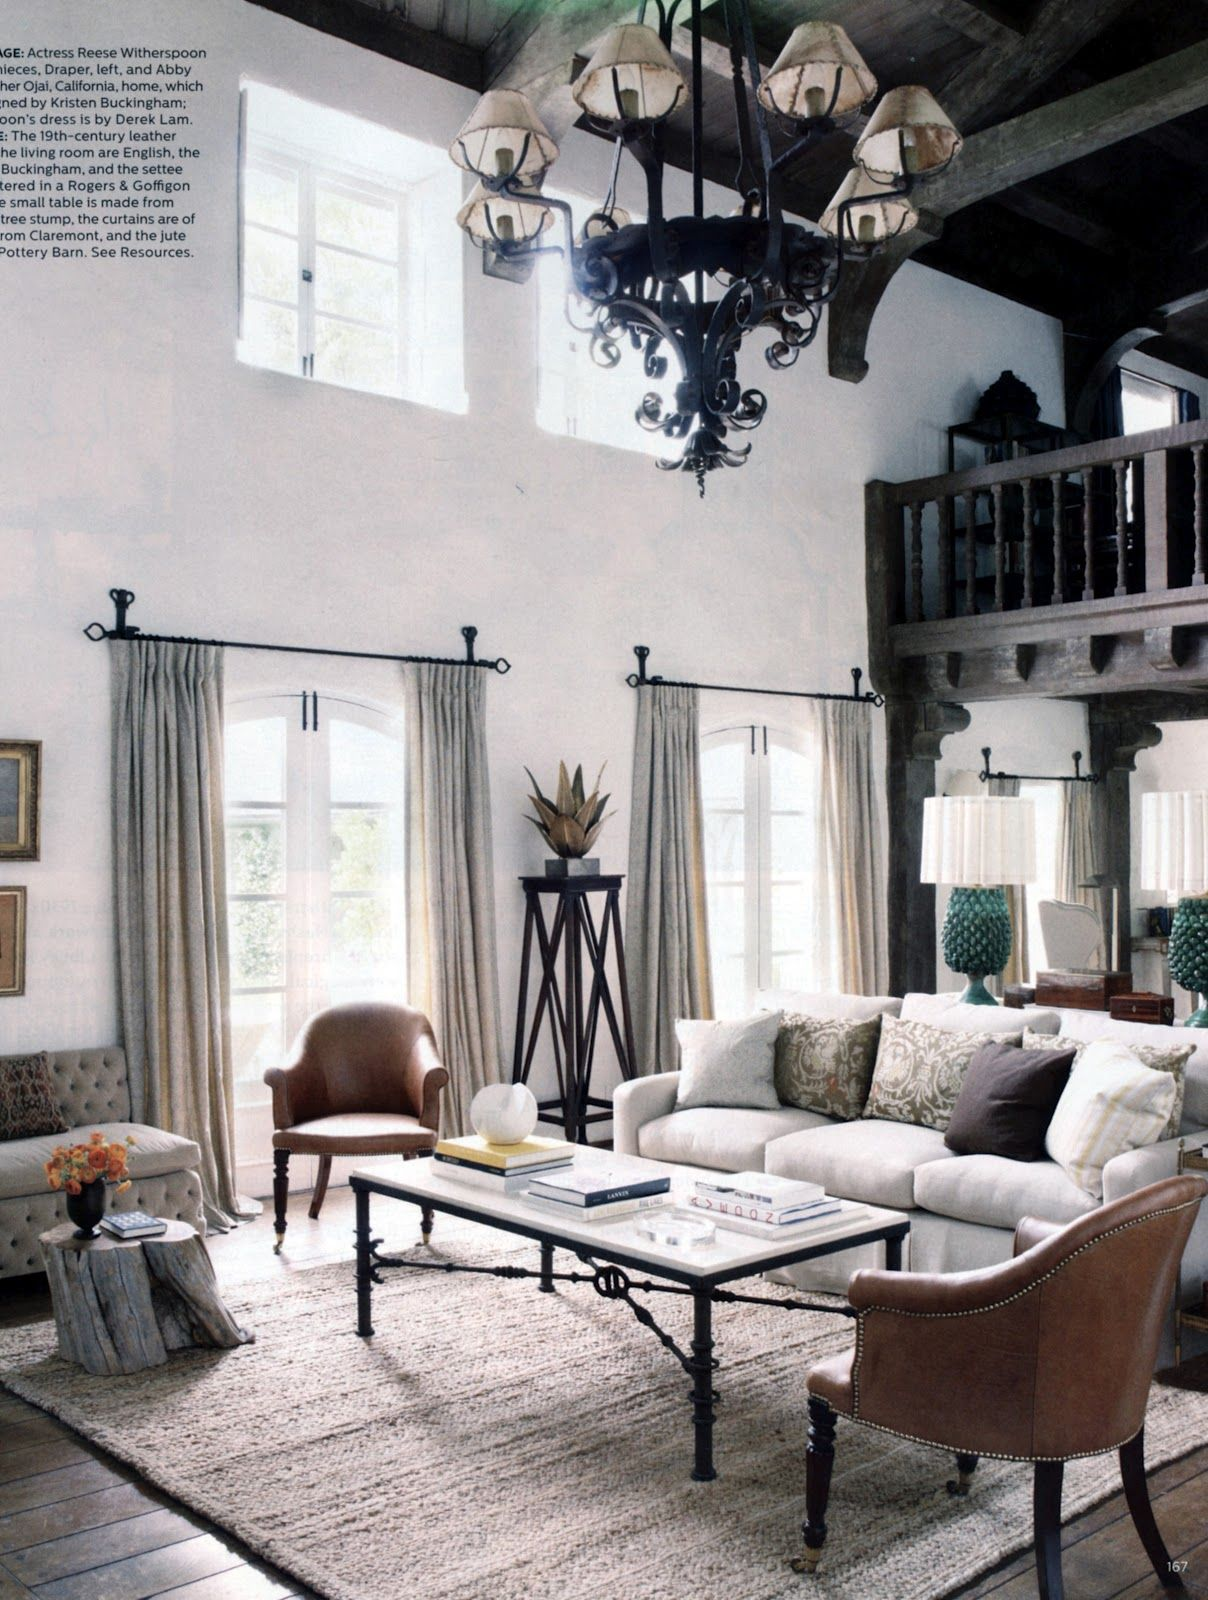 Elle Decor September 2012 Reese Witherspoon\'s home | Living Room ...